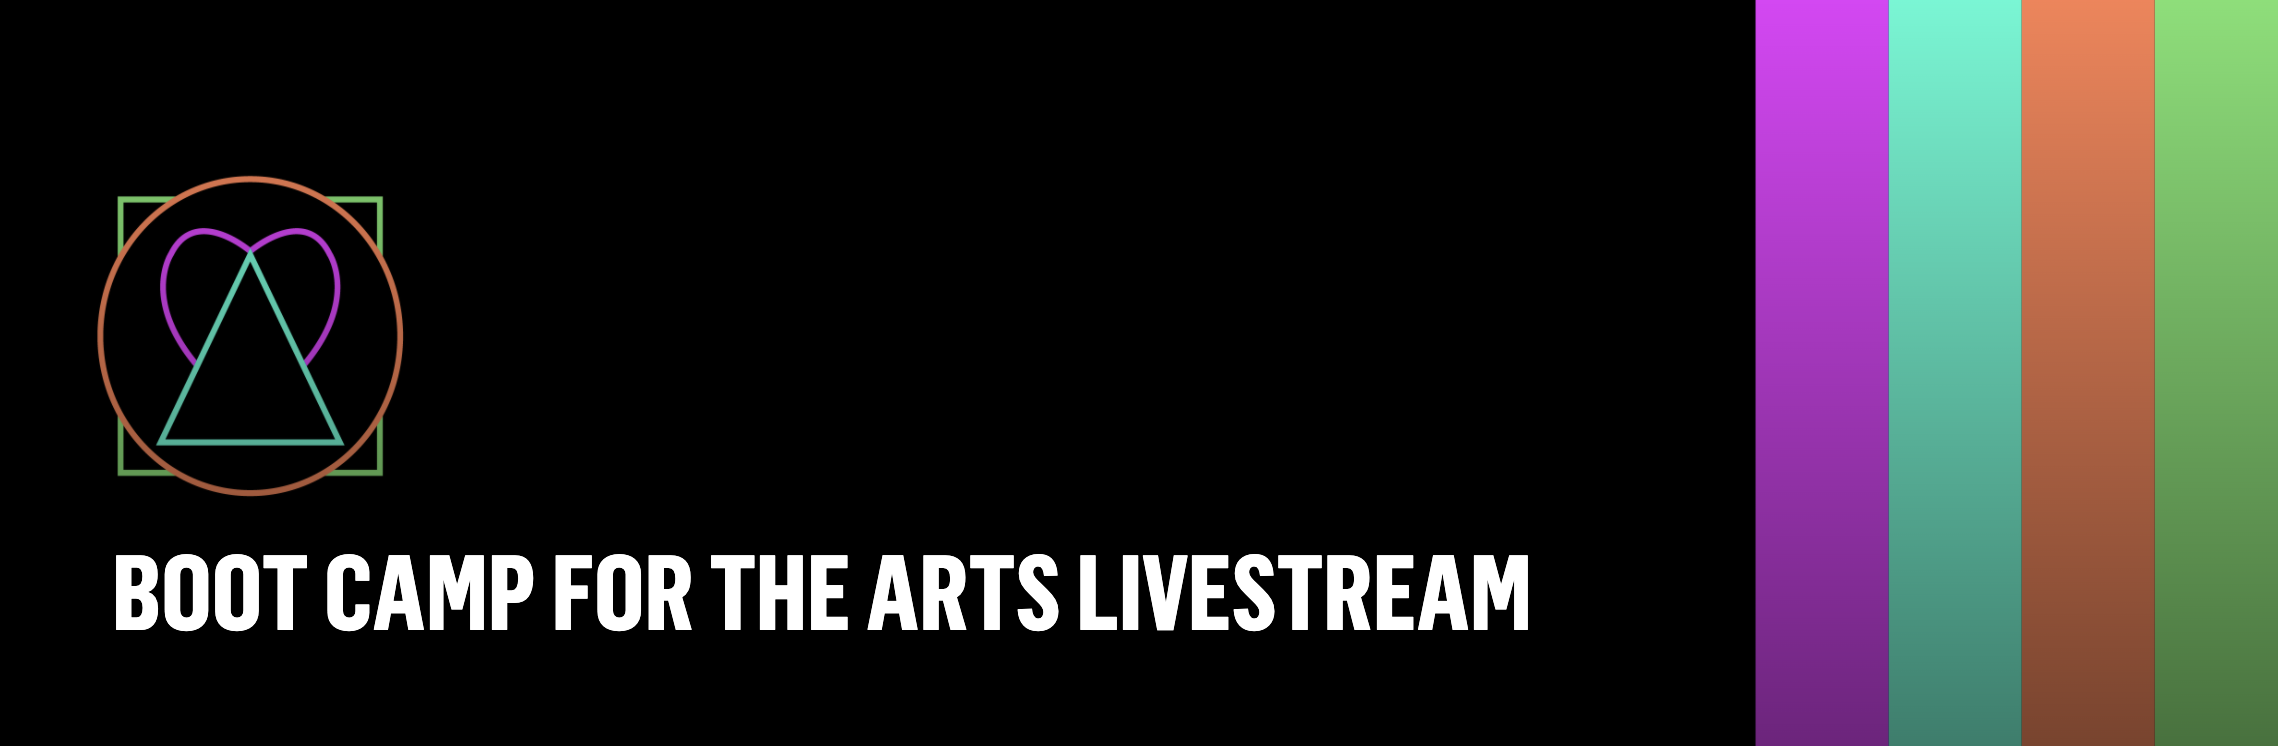 Image: Boot Camp for the Arts Livestream